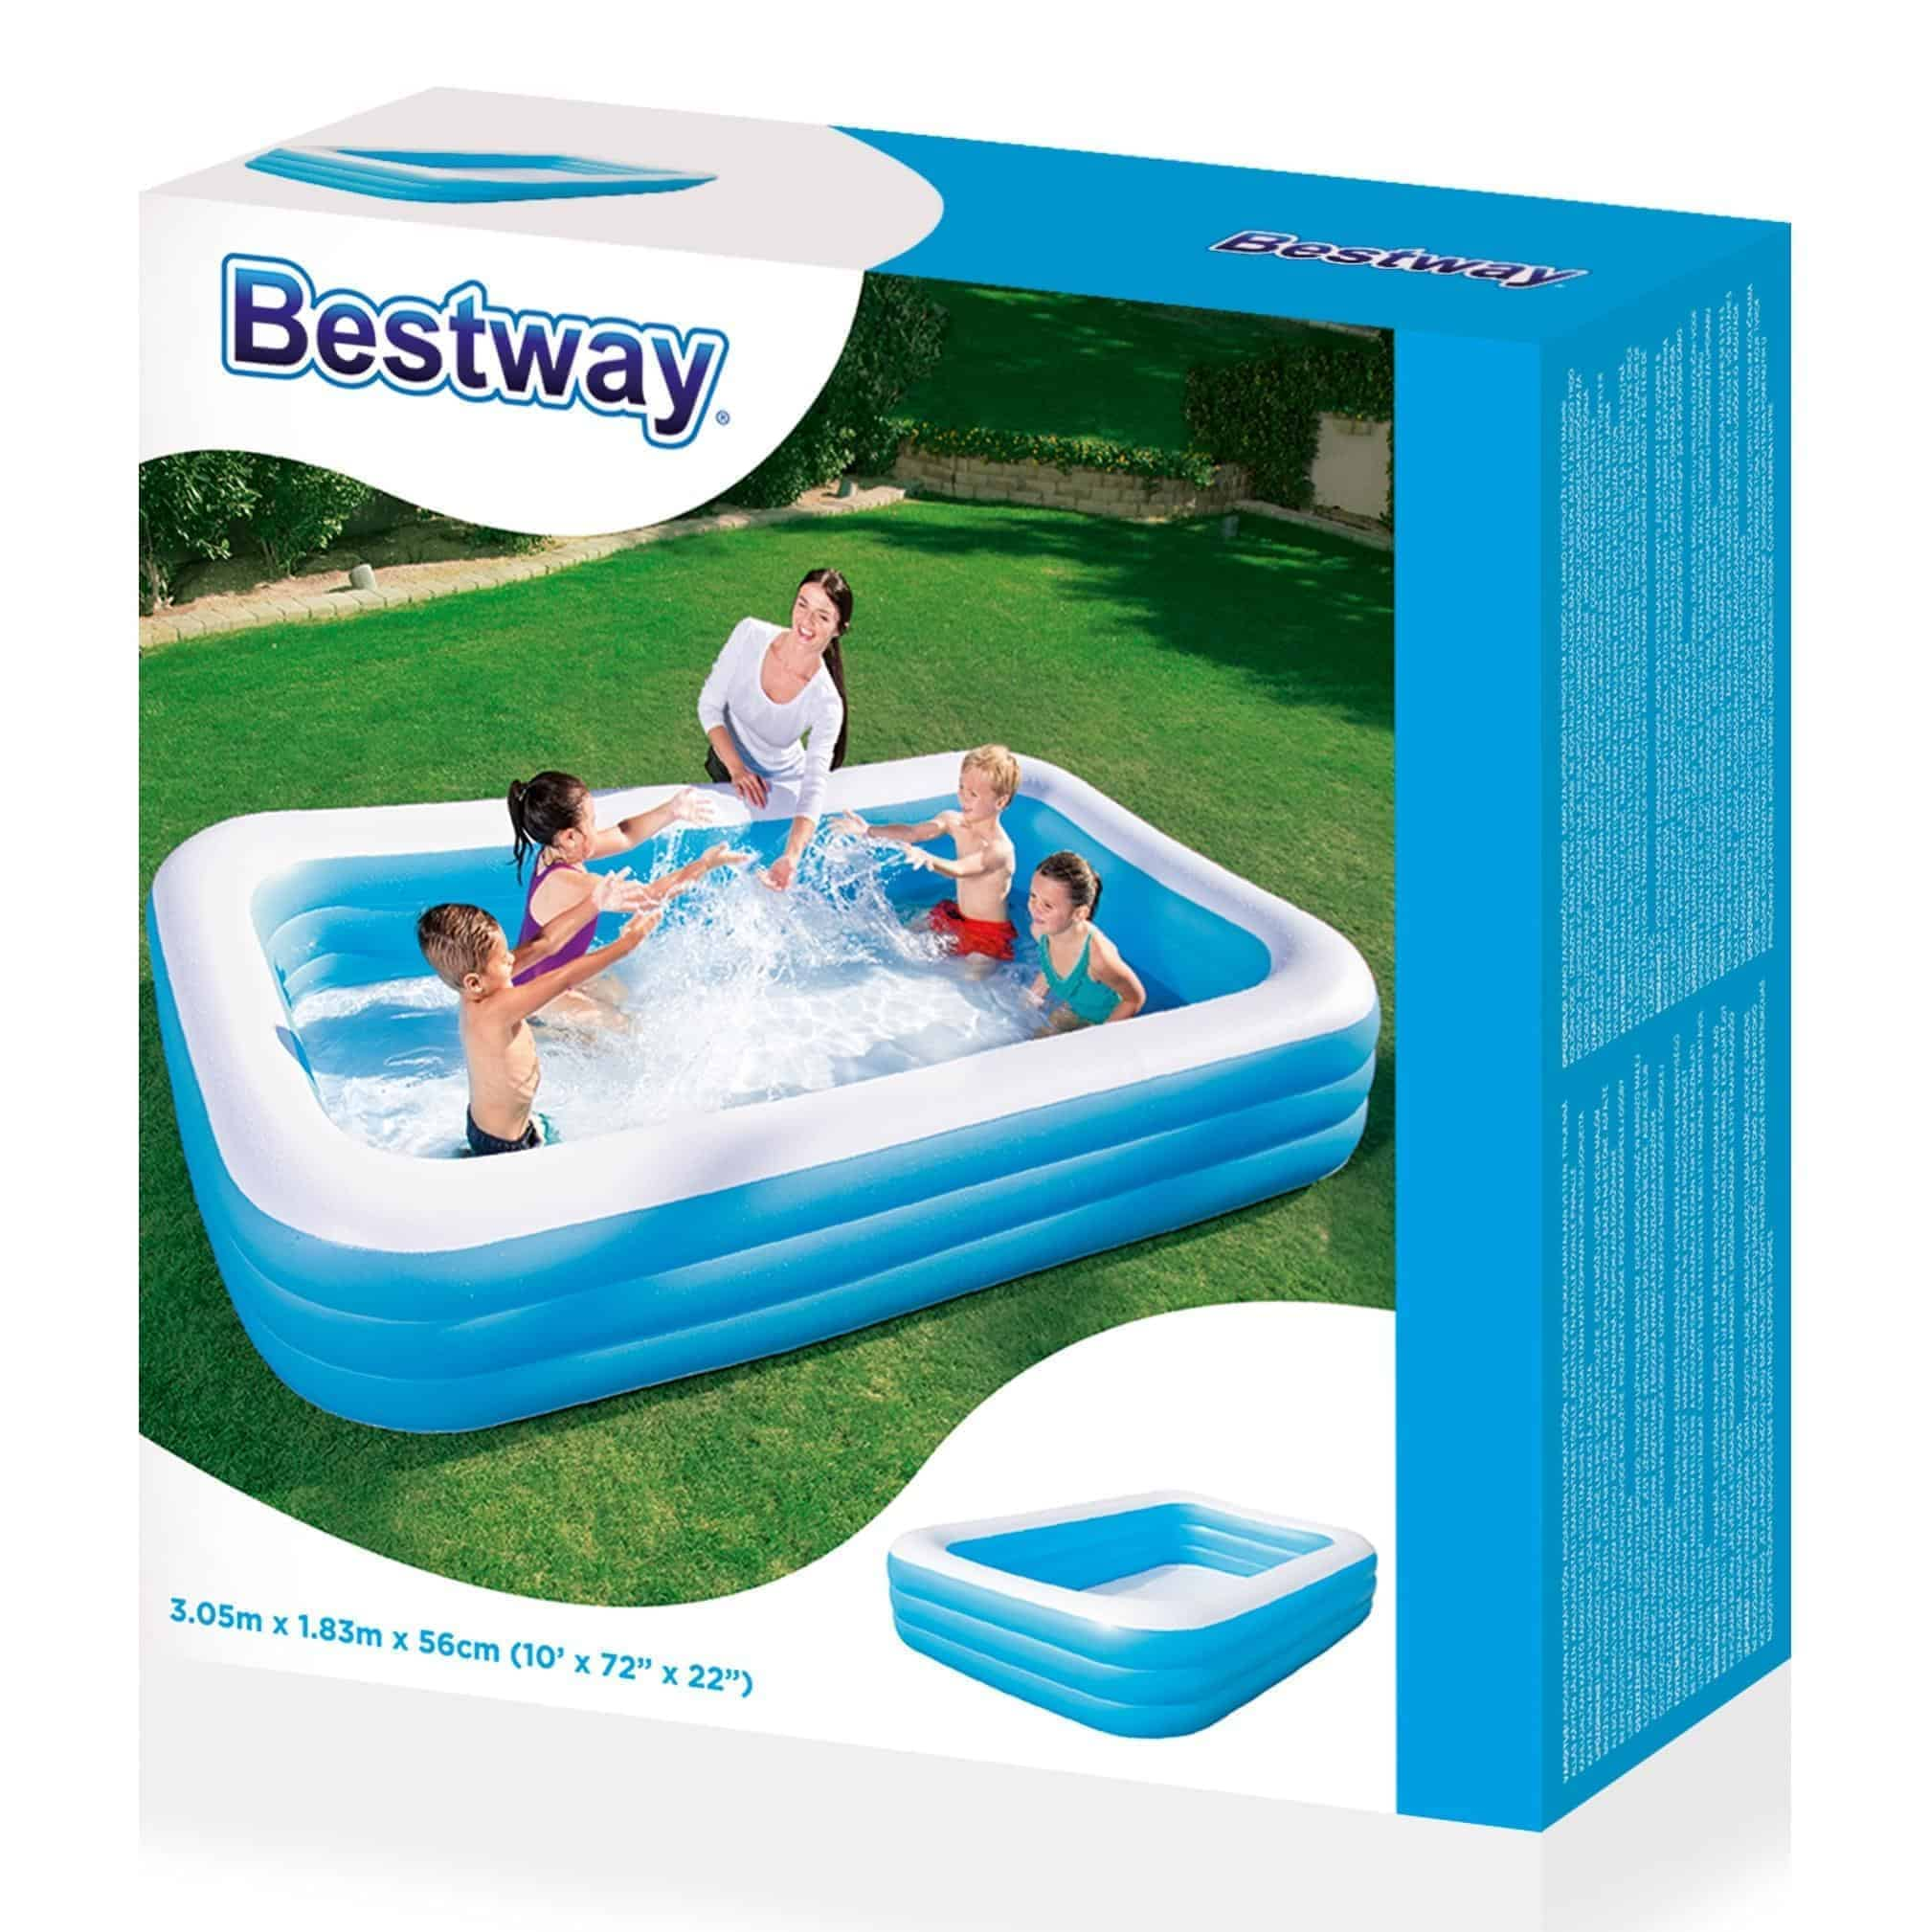 Piscina inflable bestway rectangular libreria elim for Piscina inflable bestway